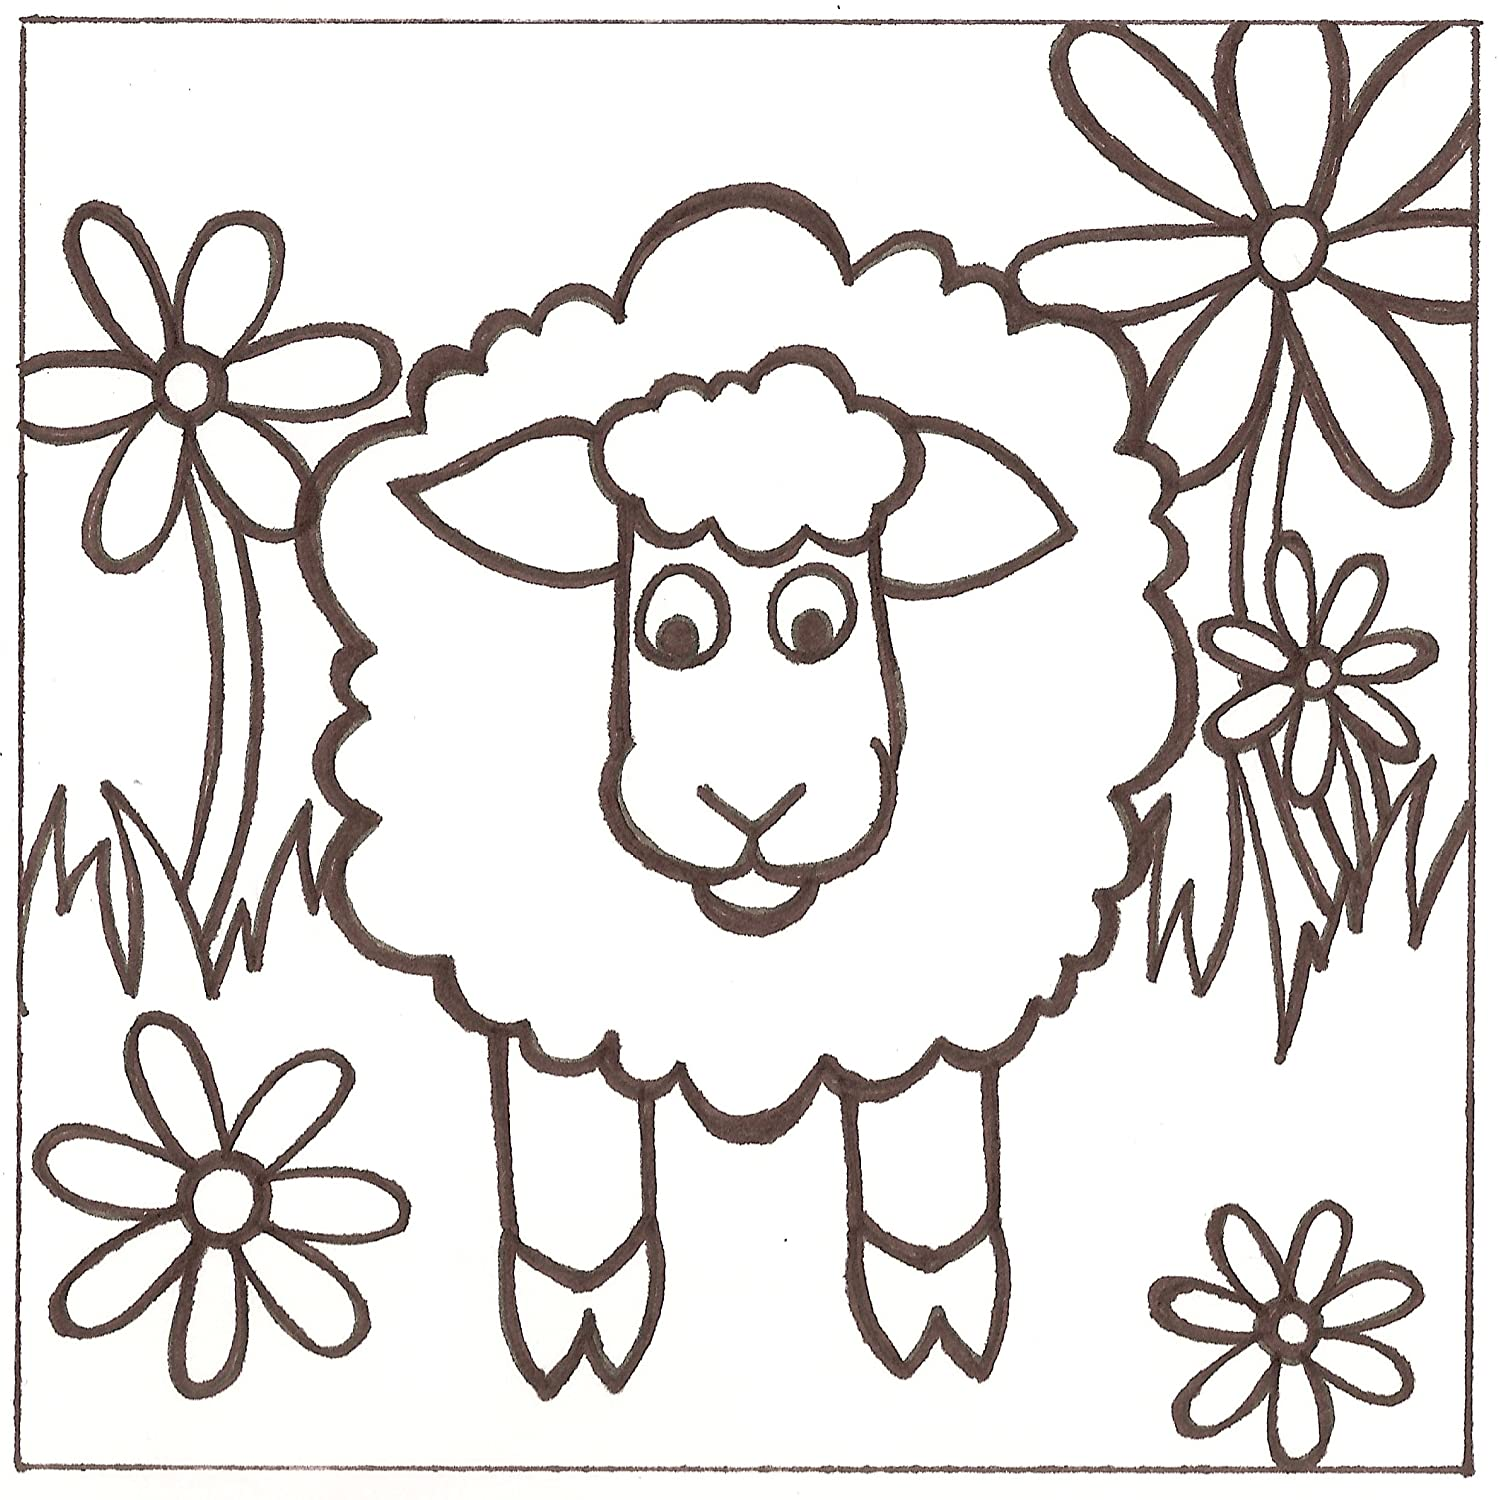 Barato PaintaDoodle 12 x 12 Sheep Painting Kit by PaintaDoodle